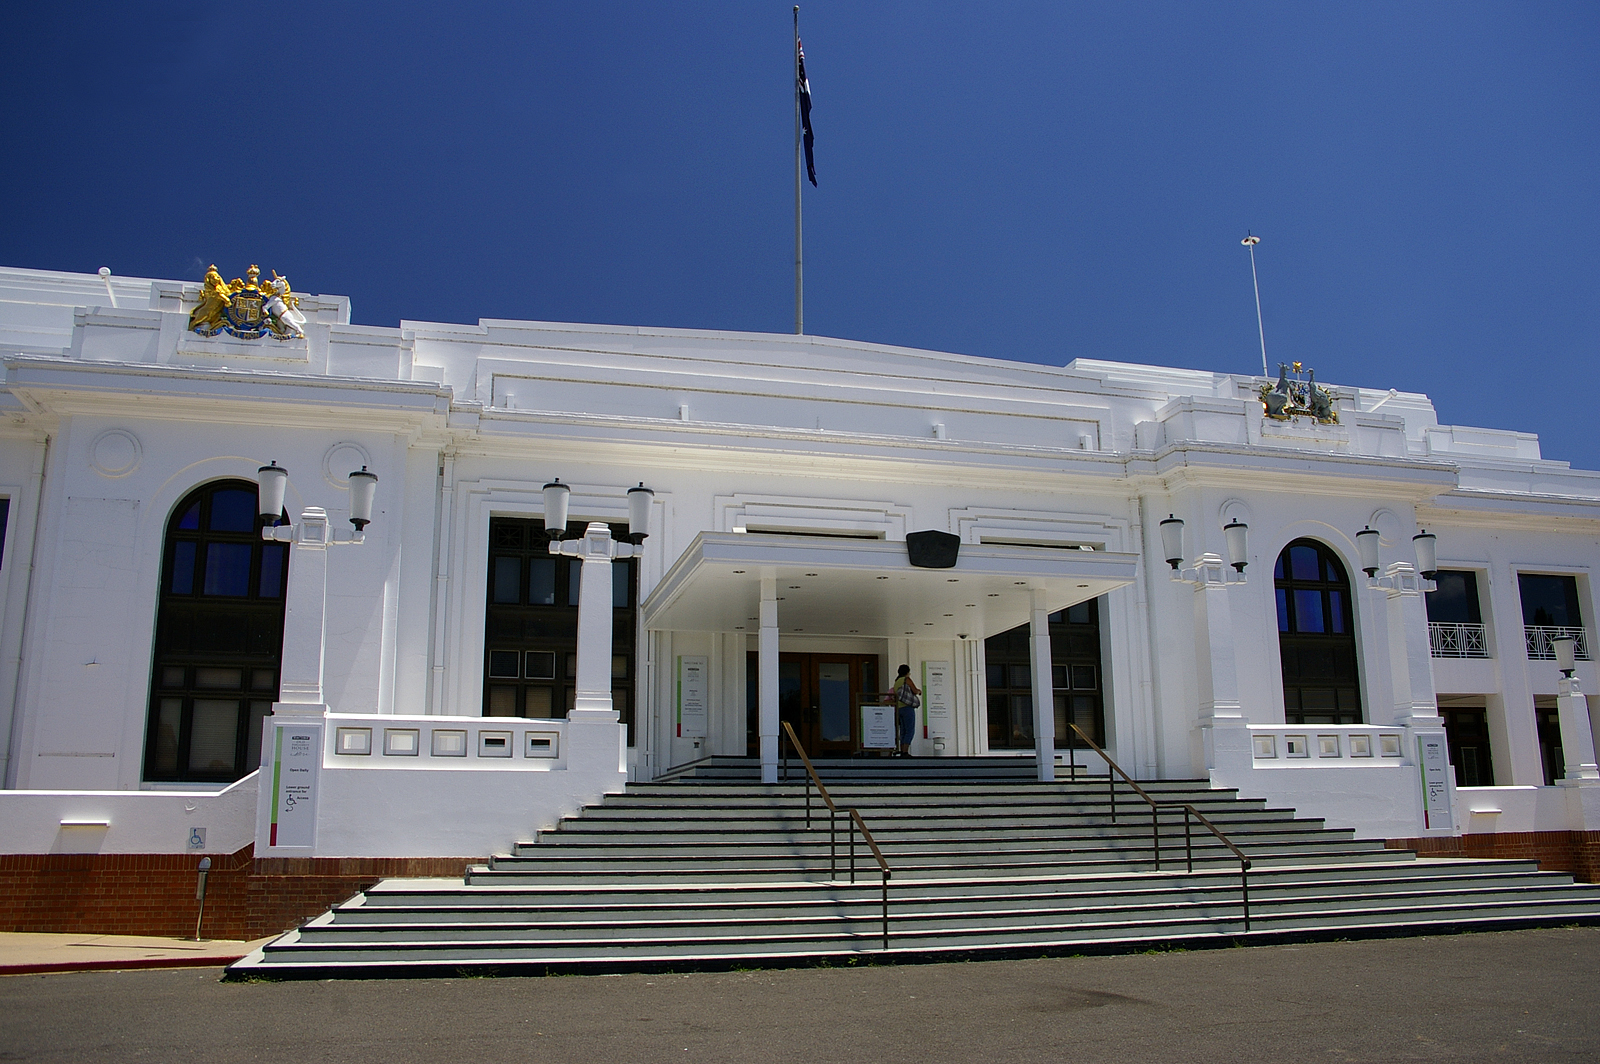 File:Old Parliament House, Canberra front entrance.jpg ...